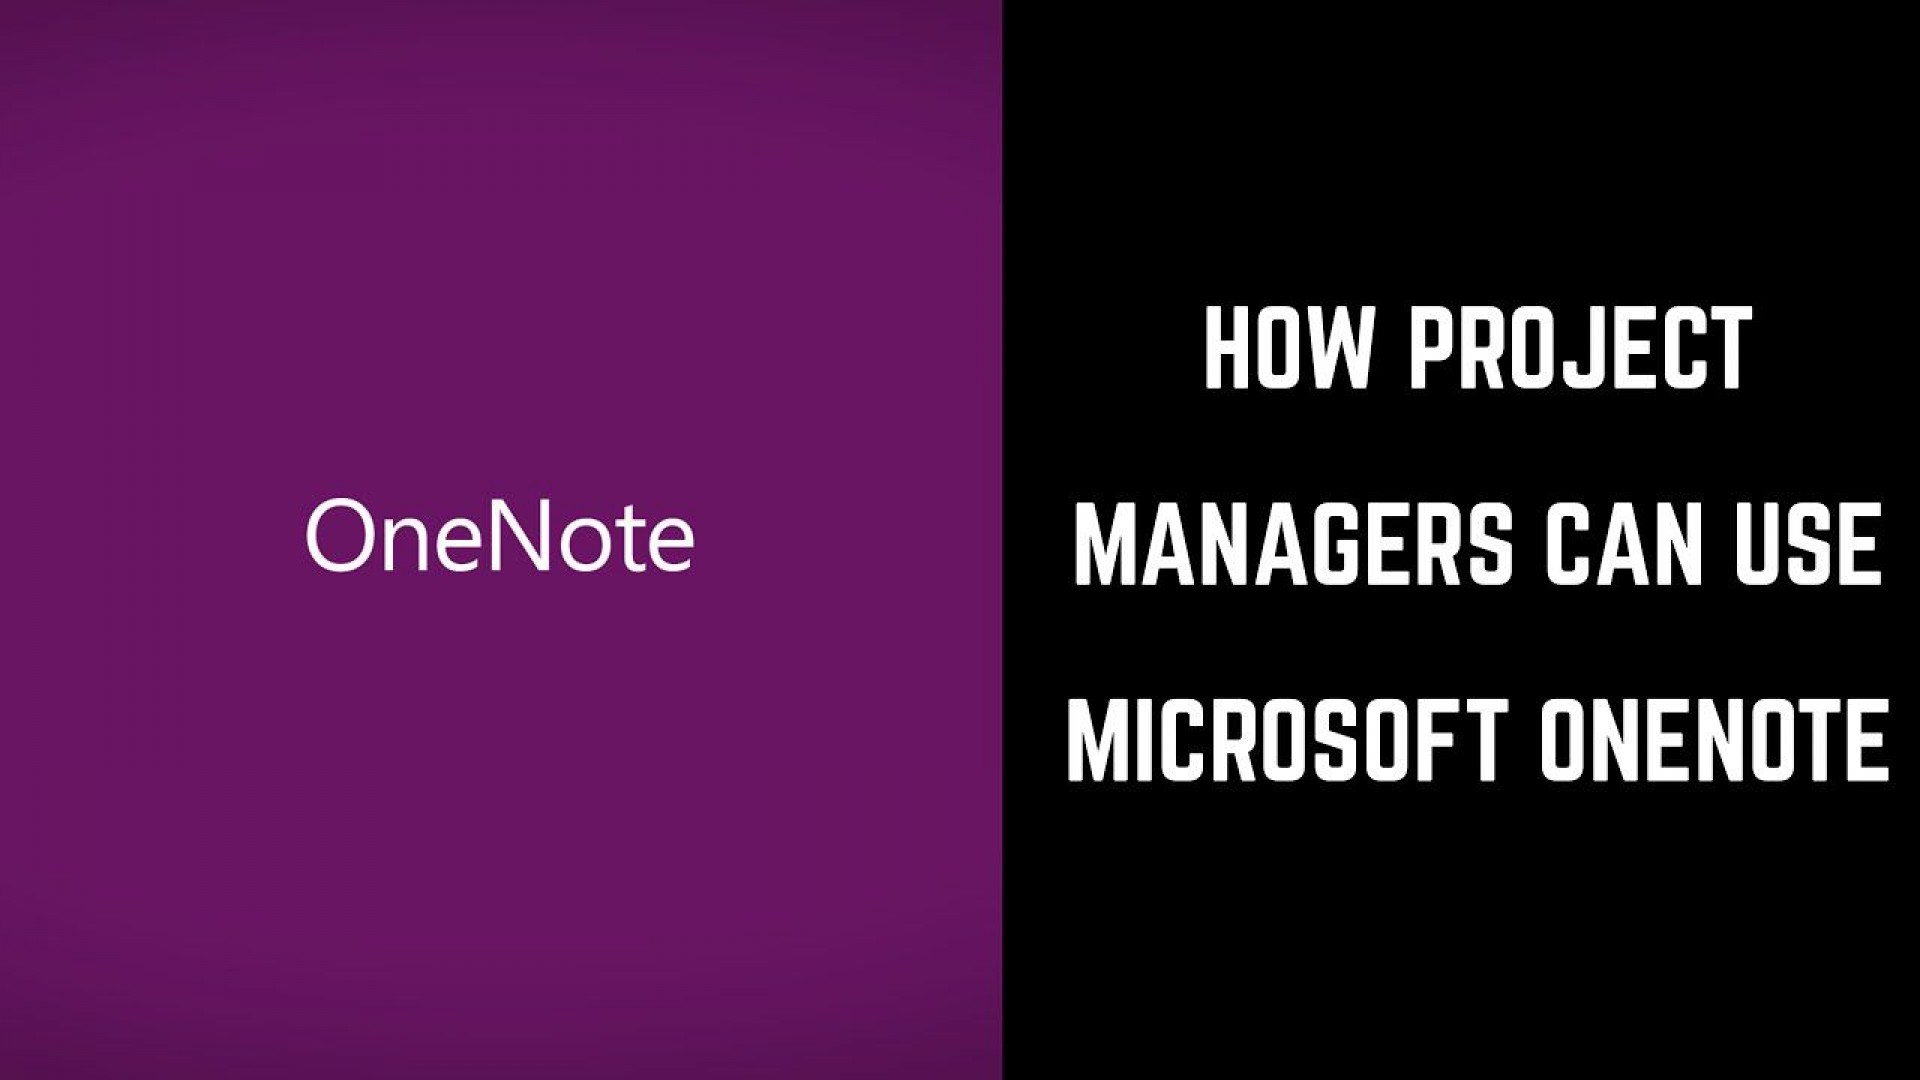 002 Phenomenal Onenote Project Management Template Free Picture  Download1920